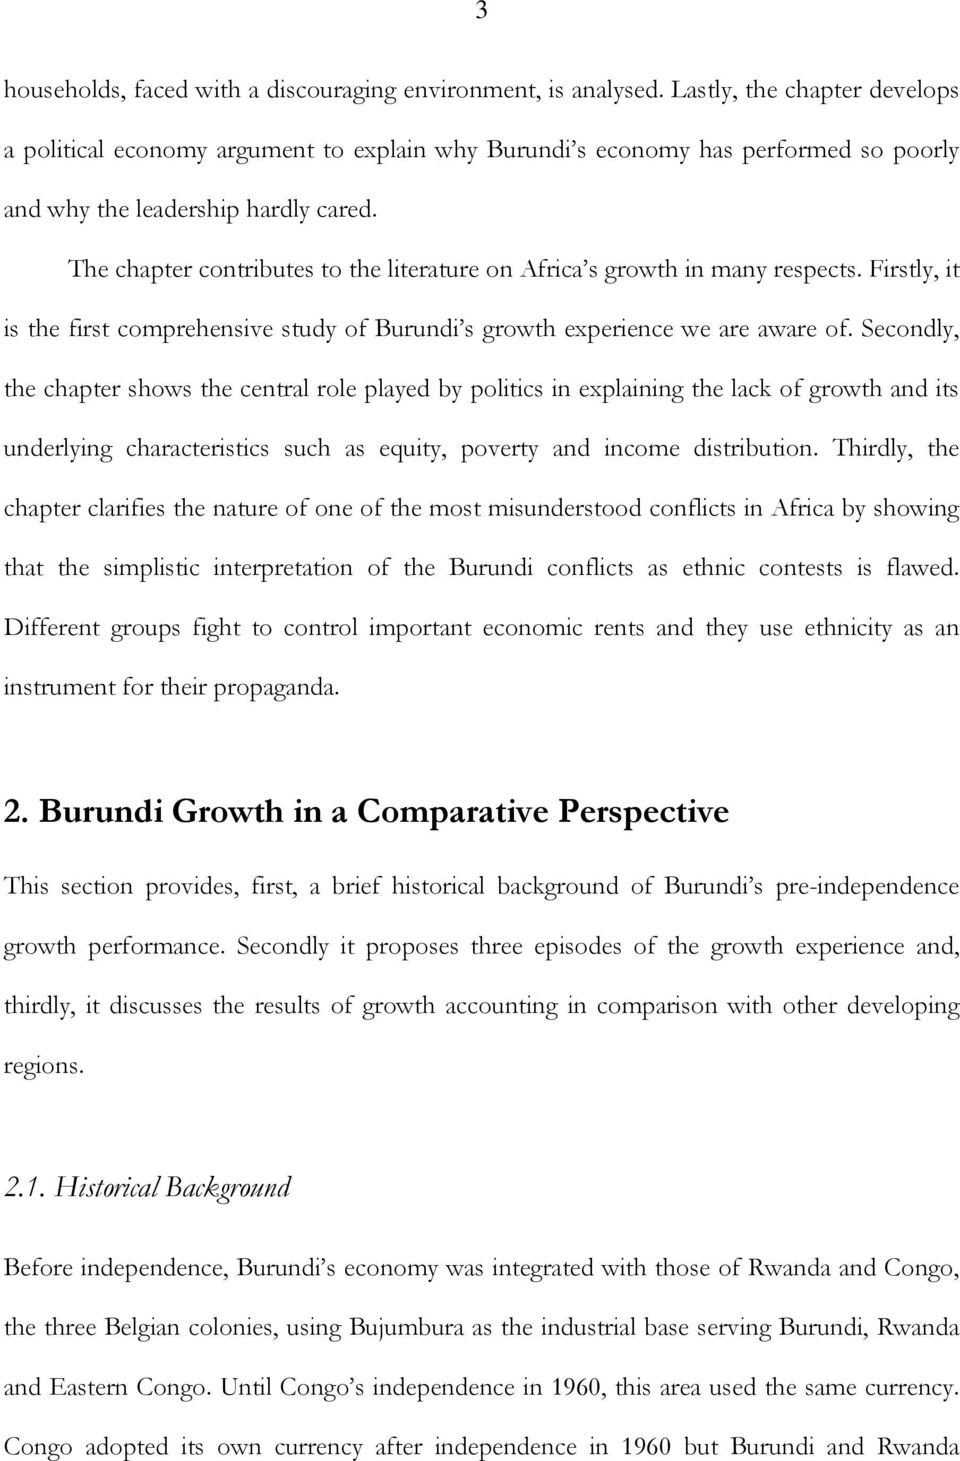 The chapter contributes to the literature on Africa s growth in many respects. Firstly, it is the first comprehensive study of Burundi s growth experience we are aware of.